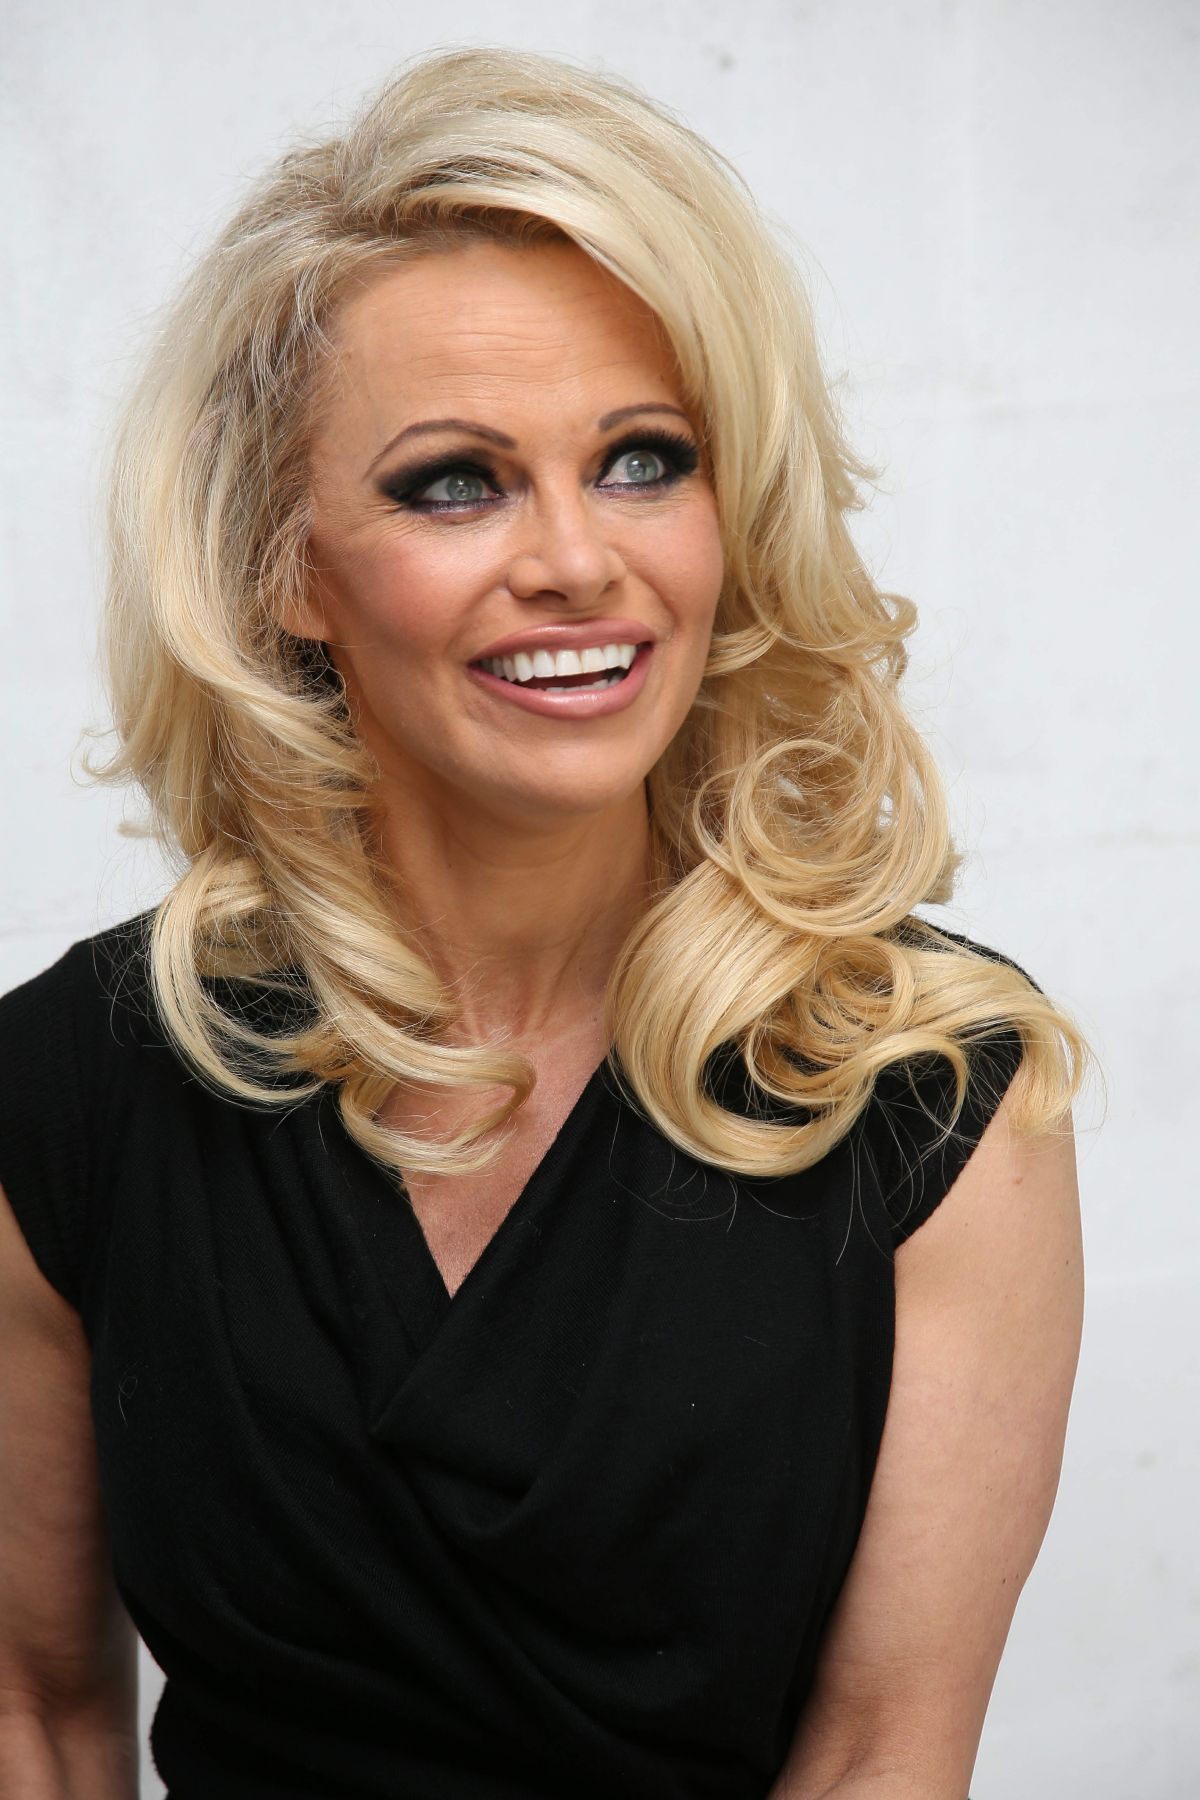 <b>PAMELA ANDERSON</b> at Amelie Pichard X <b>Pamela ANderson</b> Shoe Collection Launch ... - pamela-anderson-at-amelie-pichard-x-pamela-anderson-shoe-collection-launch-01-21-201-_1